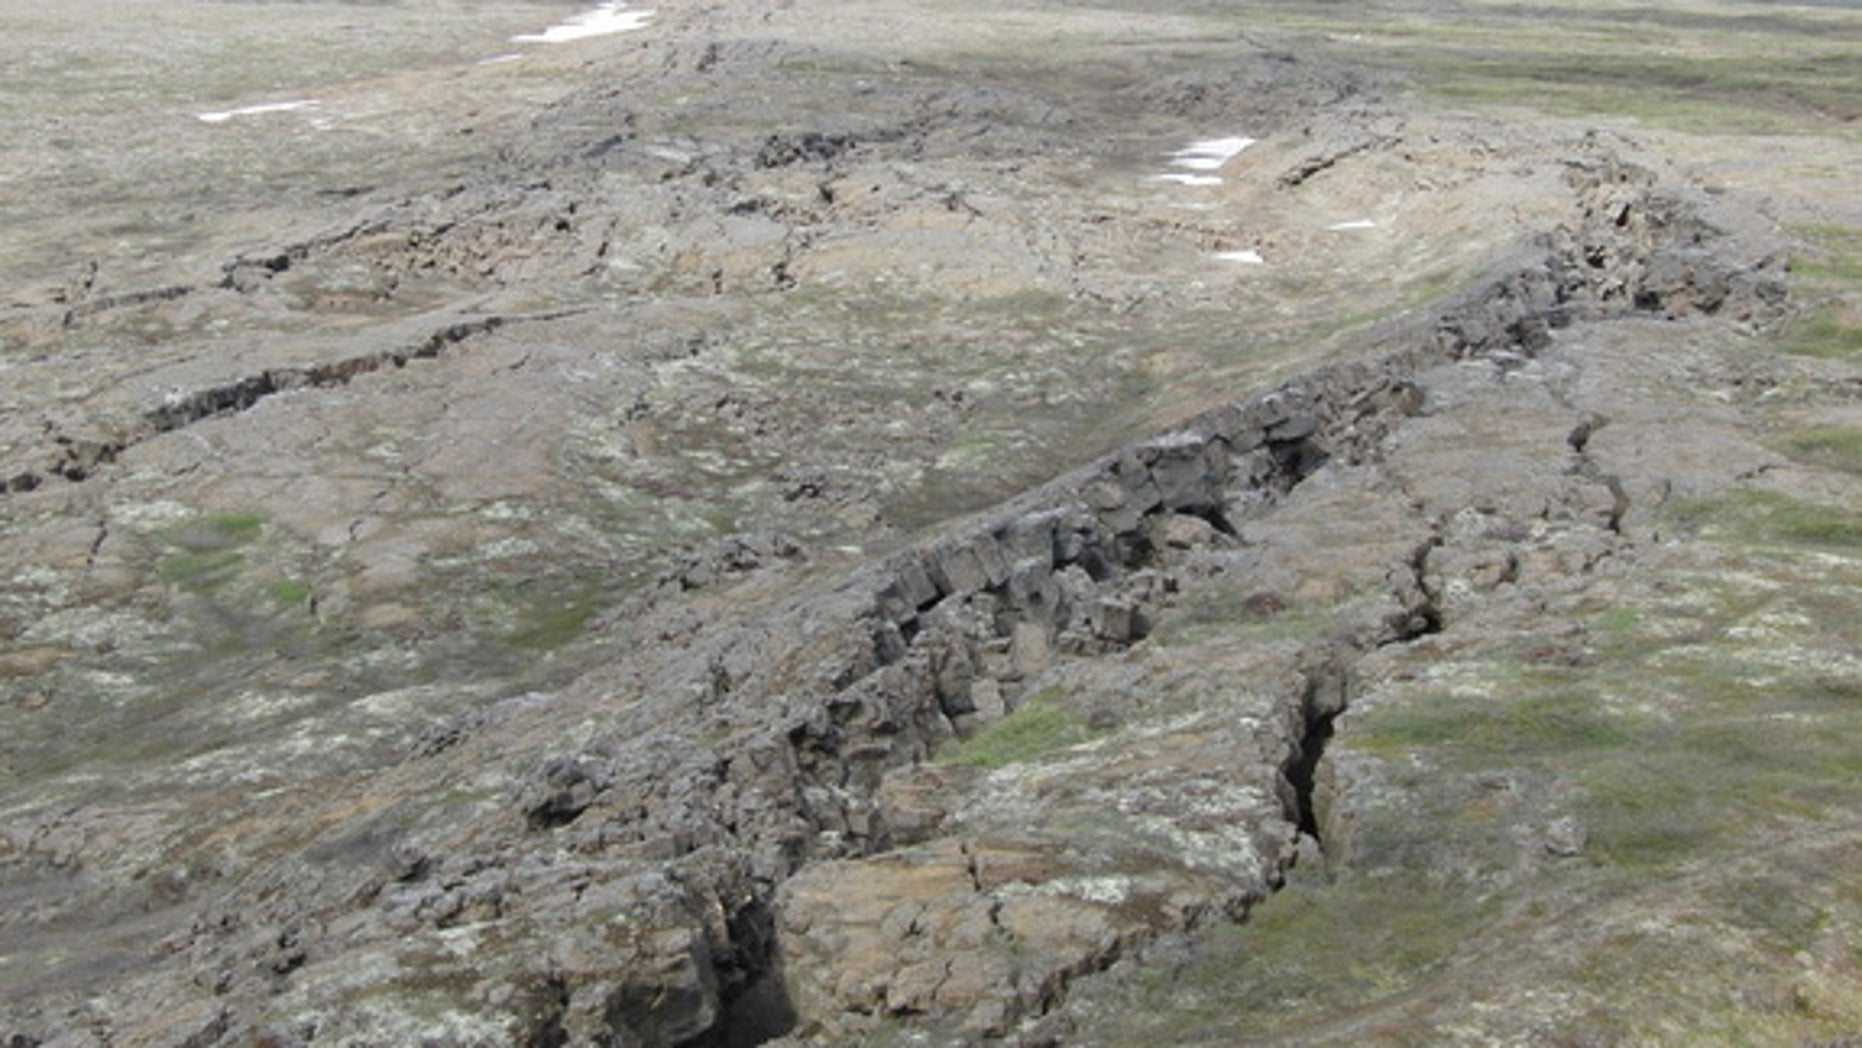 The Húsavík-Flatey Fault in Iceland. Mineral levels in groundwater near the fault changed before two earthquakes.